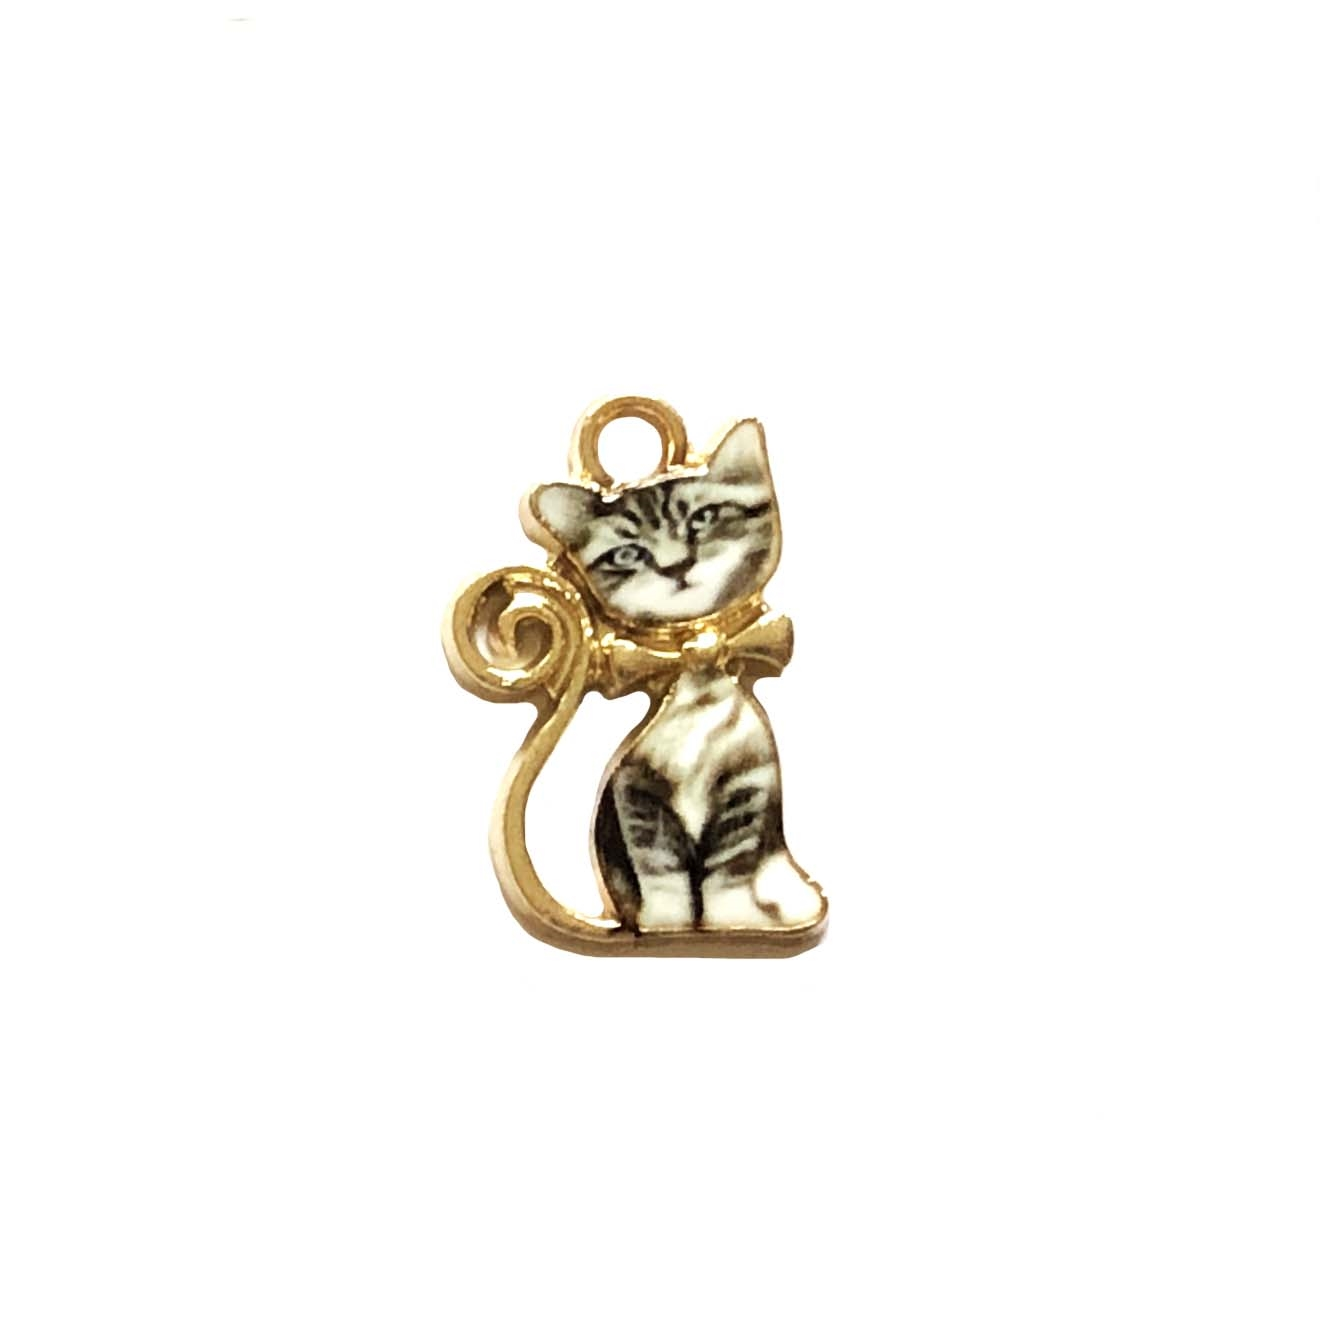 kitty charm, sitting gray tabby, kitty, cat, charm, pendant, 21 x 13mm, B'sue Boutiques, jewelry making, vintage supplies, jewelry supplies, jewelry findings, 0276, white enamel, gold plate, sitting kitty, gray tabby cat